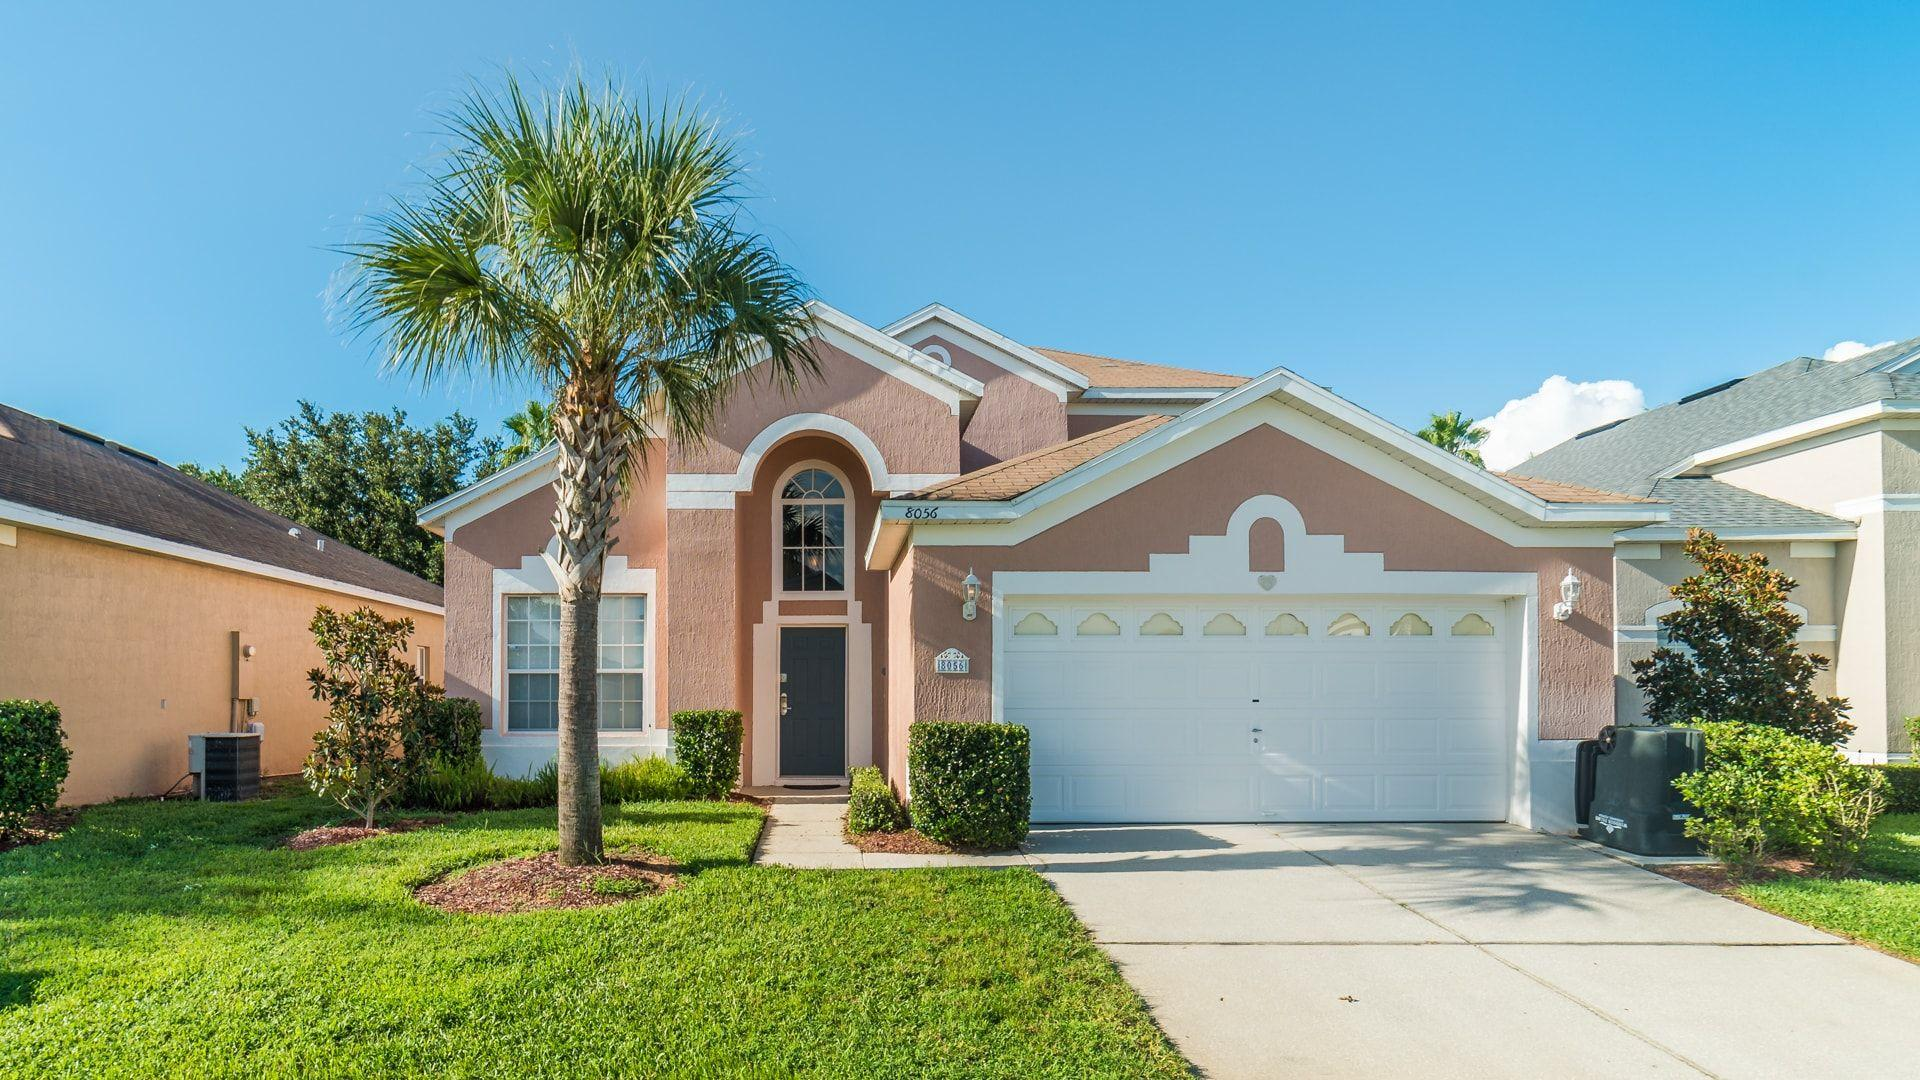 Property Image 1 - Awesome 5 Br Rental Near Disney with Game Room